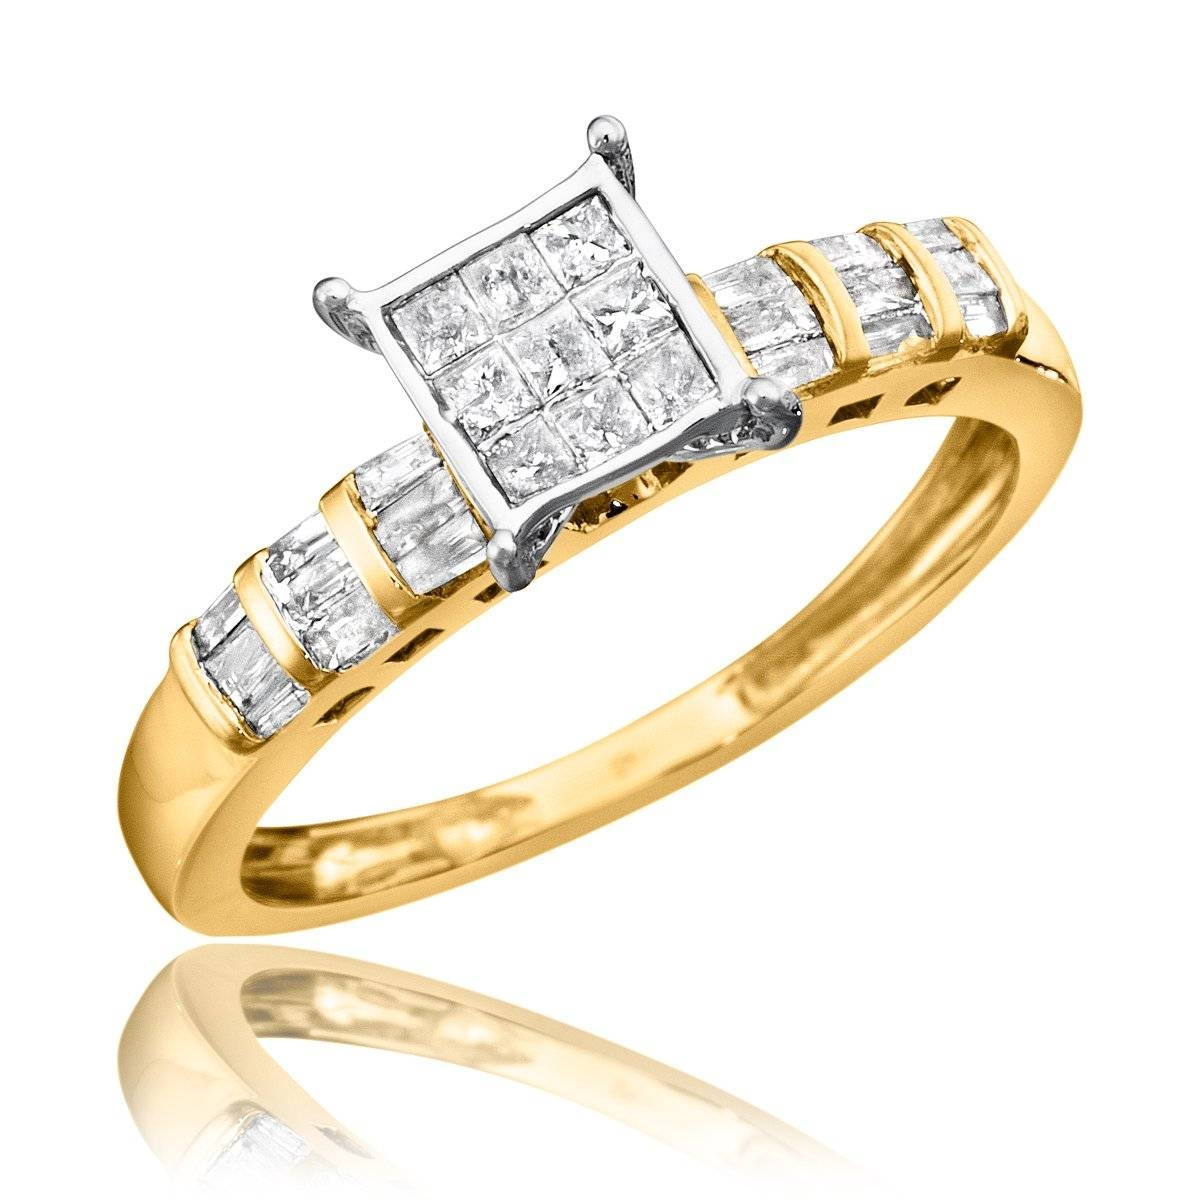 3/4 Carat Diamond Bridal Wedding Ring Set 10K Yellow Gold Inside Engagement Rings And Wedding Ring Sets (View 5 of 15)